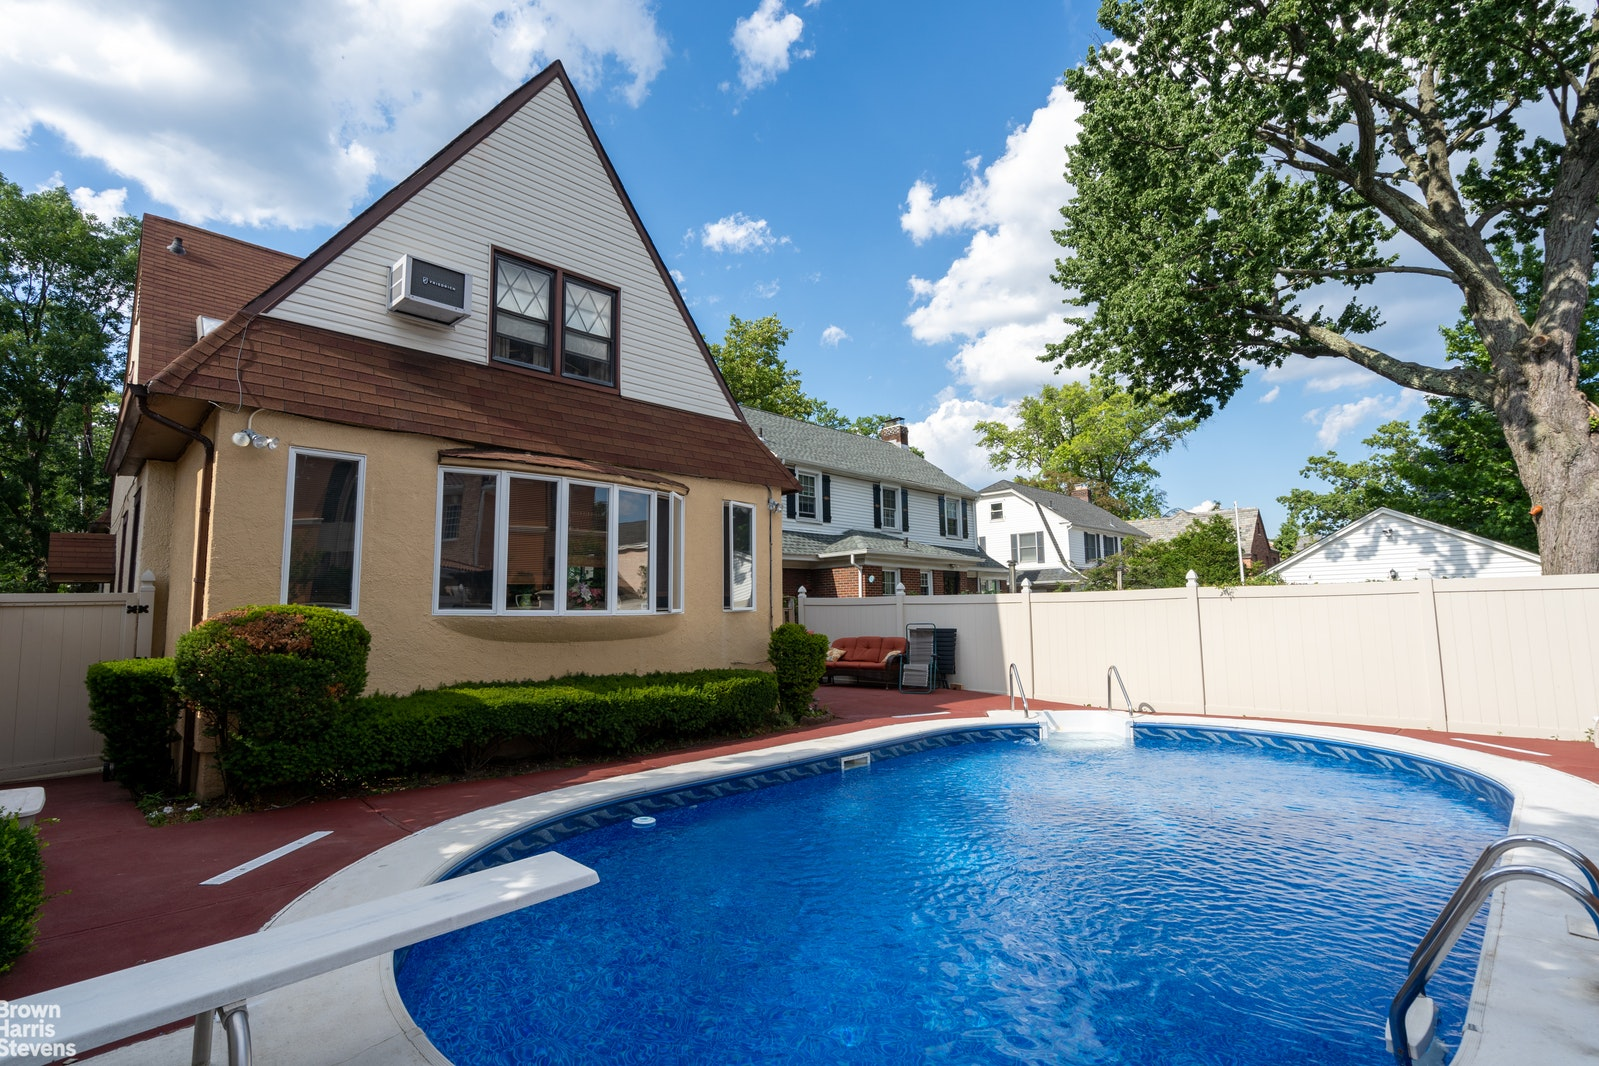 162 -50 14th Avenue, Beechhurst, Queens, NY, 11357, $1,495,000, Property For Sale, Halstead Real Estate, Photo 24